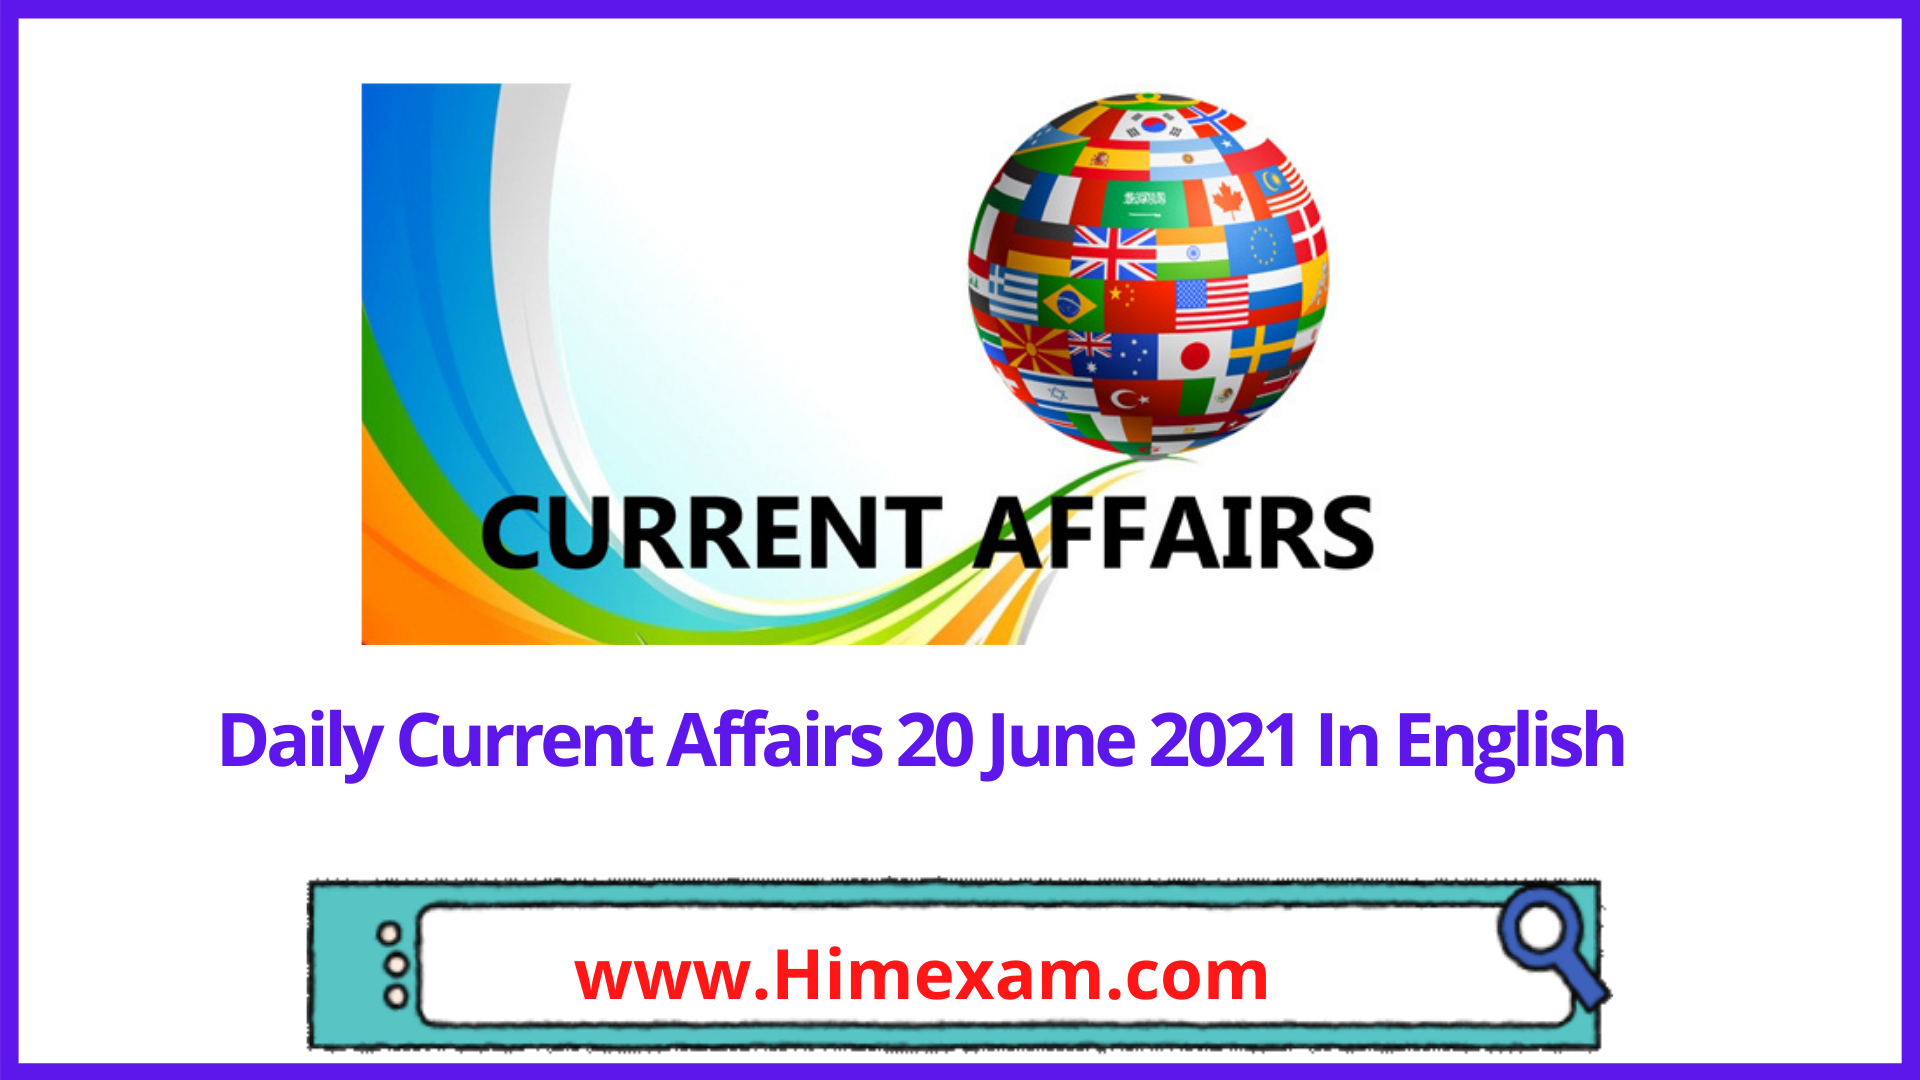 Daily Current Affairs 20 June 2021 In English